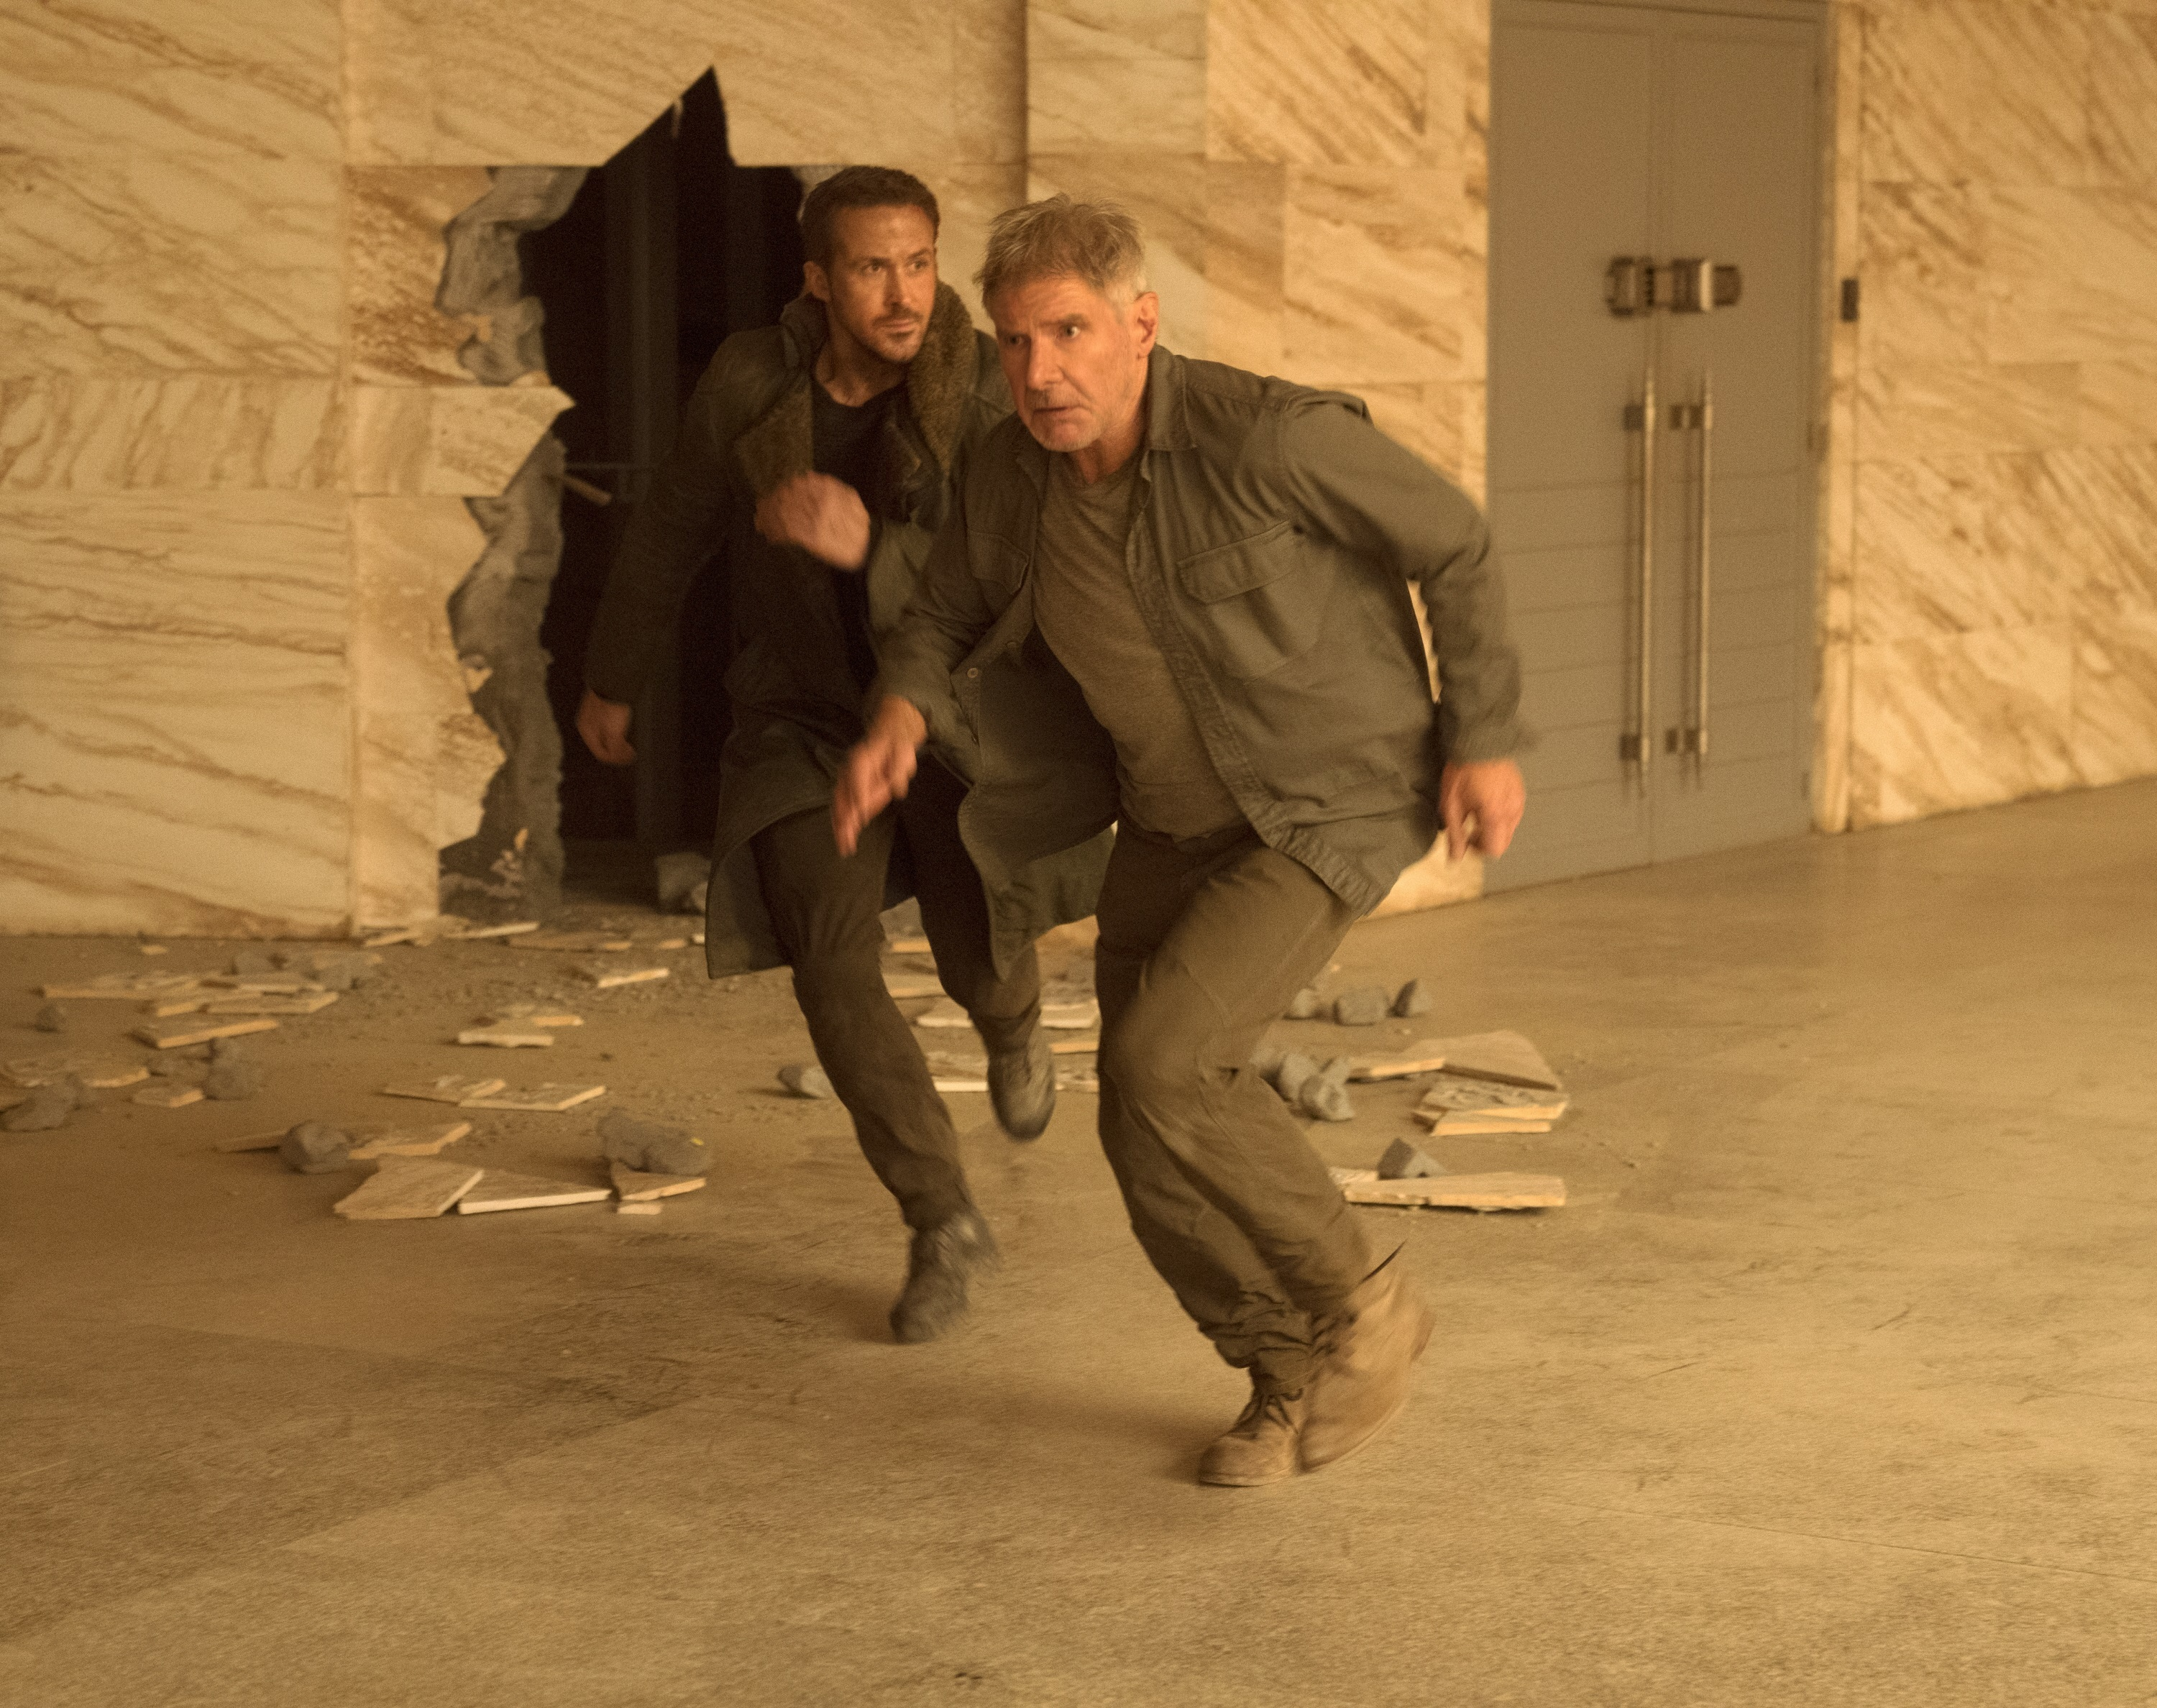 """Ryan Gosling and Harrison Ford star in """"Blade Runner 2049,"""" which premiered in the U.S. on Oct. 6, 2017."""